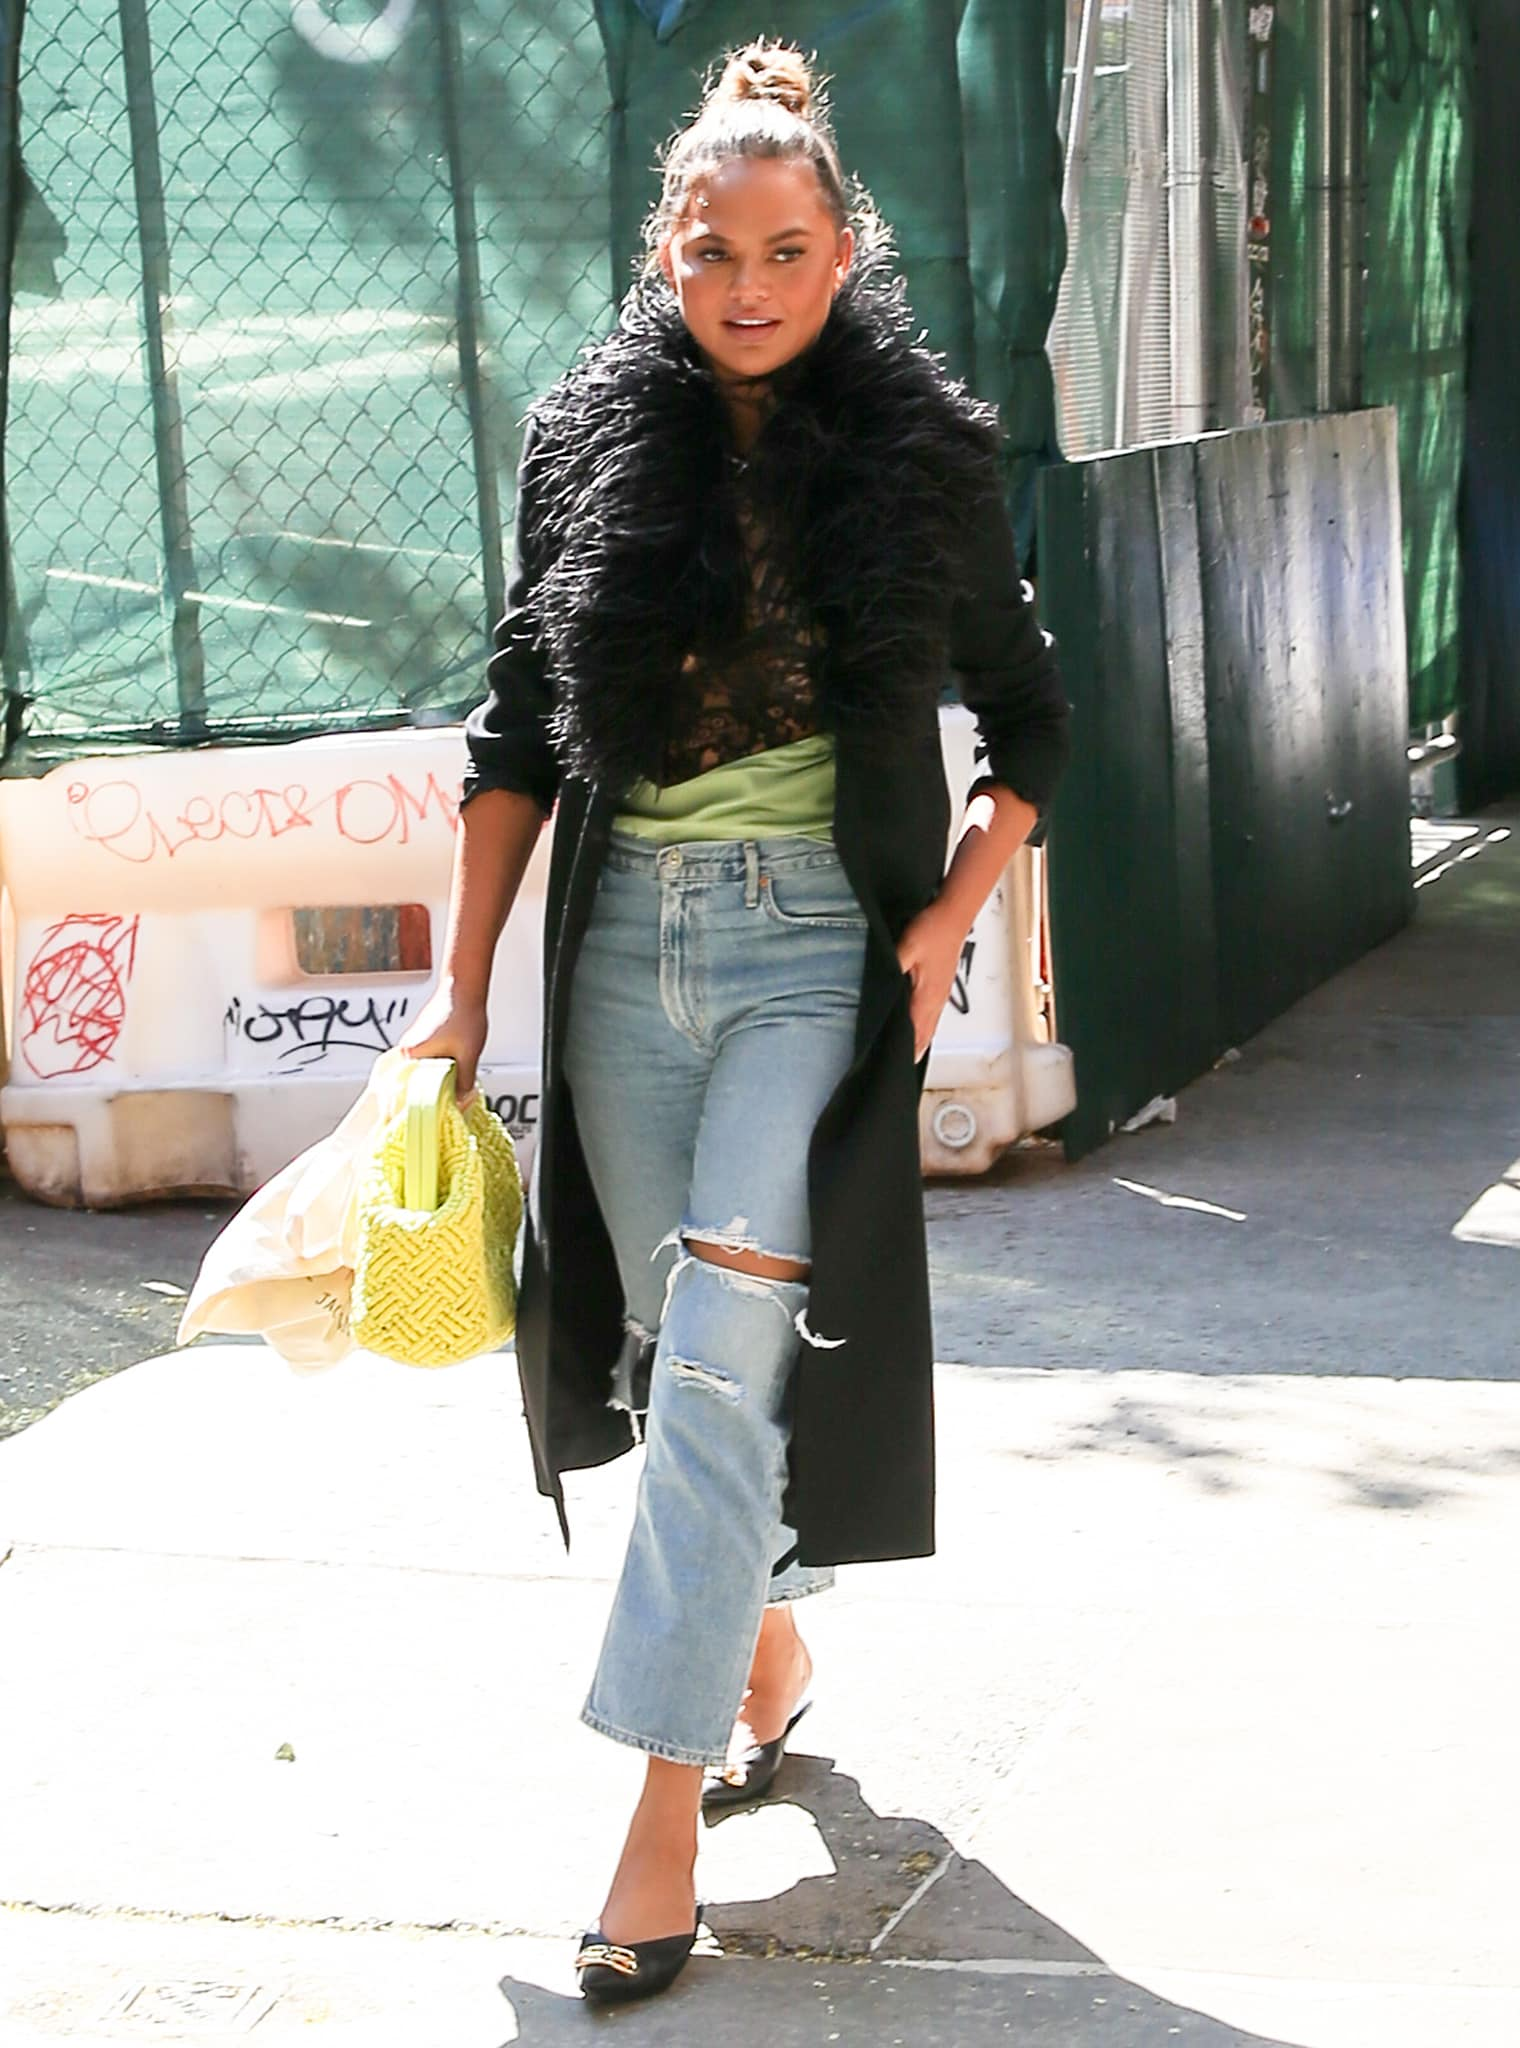 Chrissy Teigen's Saint Laurent feathered wool coat adds glam factor to her casual outfit